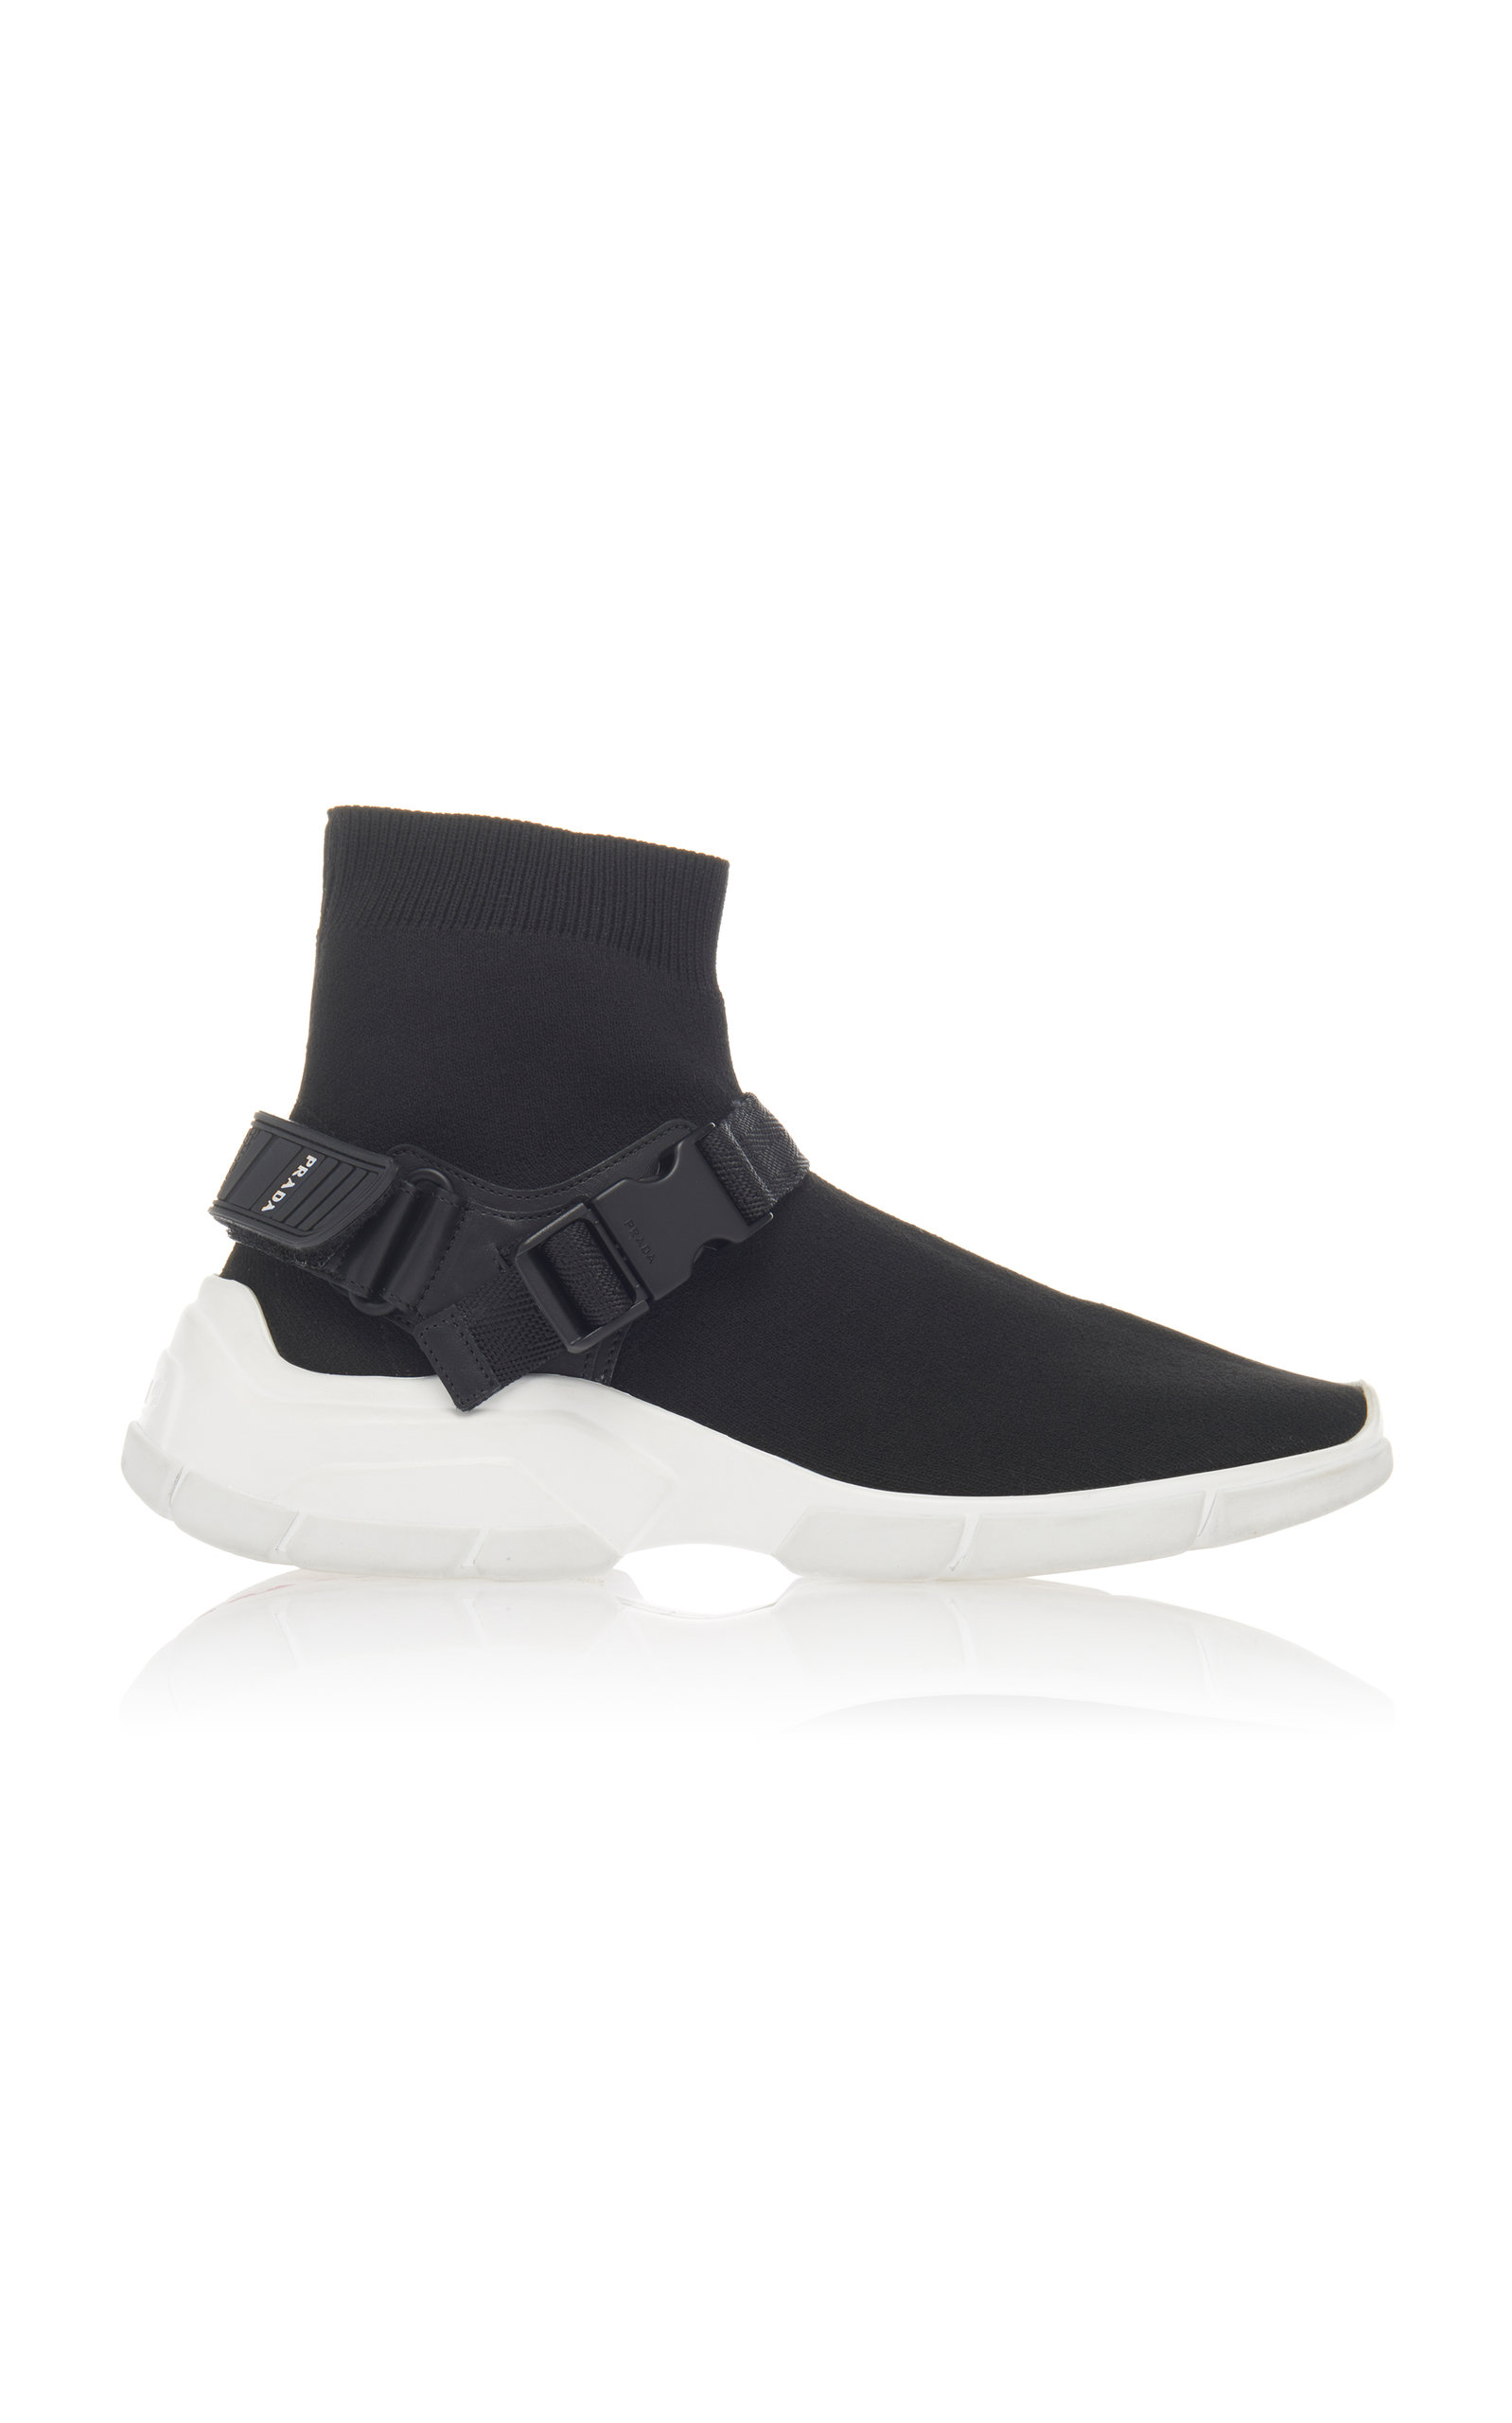 BUCKLED RUBBER-TRIMMED STRETCH-KNIT SNEAKERS